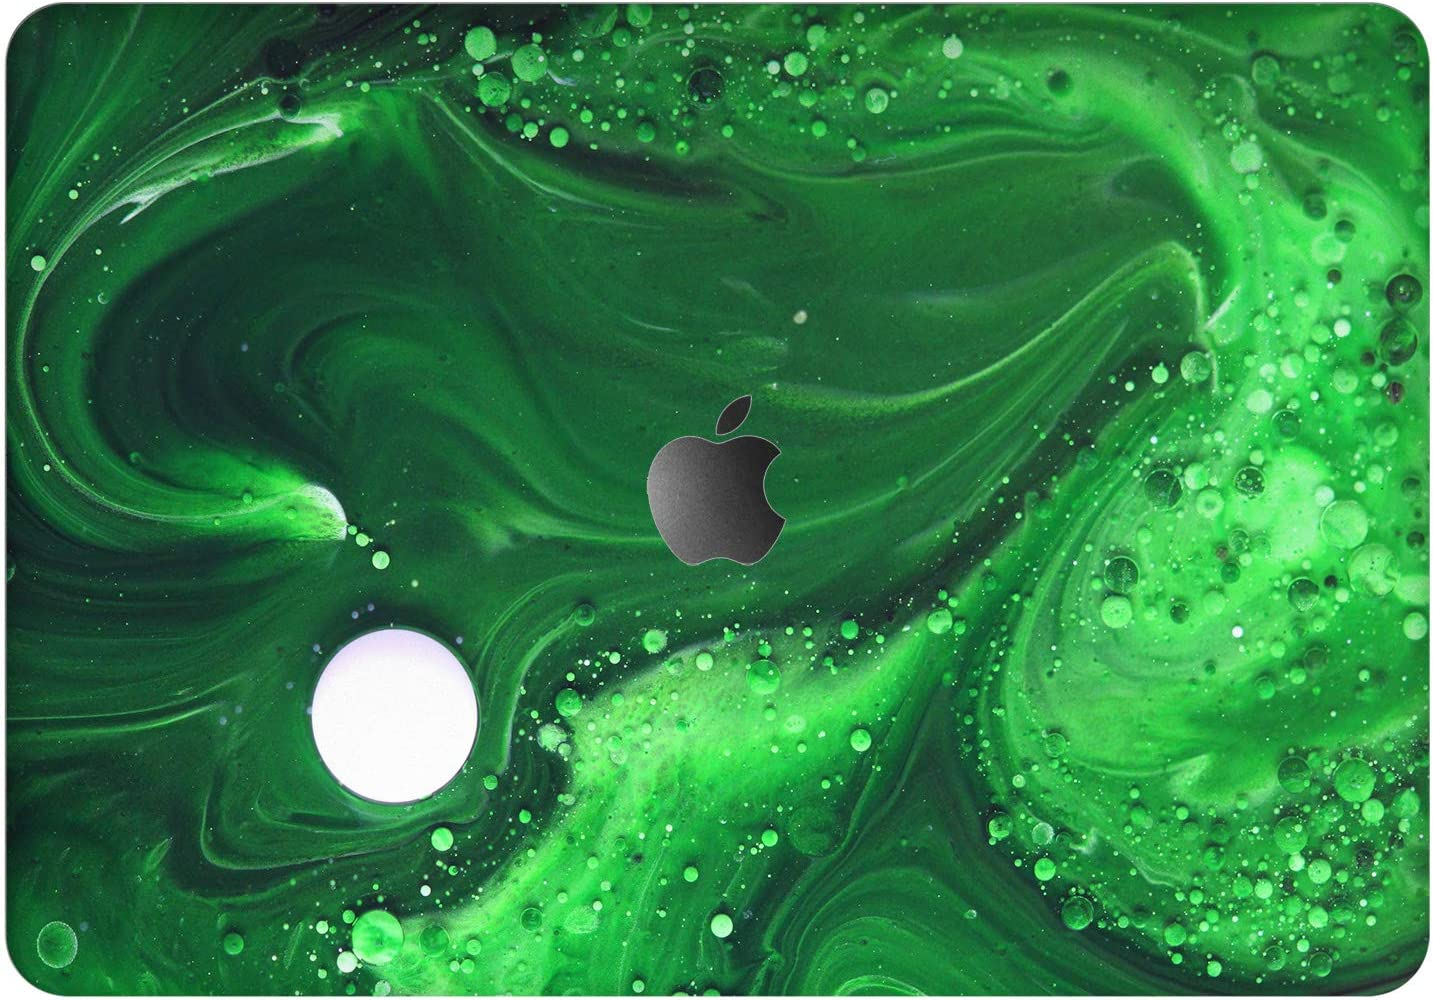 """Vonna Vinyl Decal Skin for Apple MacBook Pro 16"""" 2019 Pro 13"""" 2020 Retina 15"""" Air 13"""" 2018 Mac Air 11"""" Mac 12 Laptop Paint Texture Poison Oil Print Abstract Cover Protective Green Sticker Top t0203"""